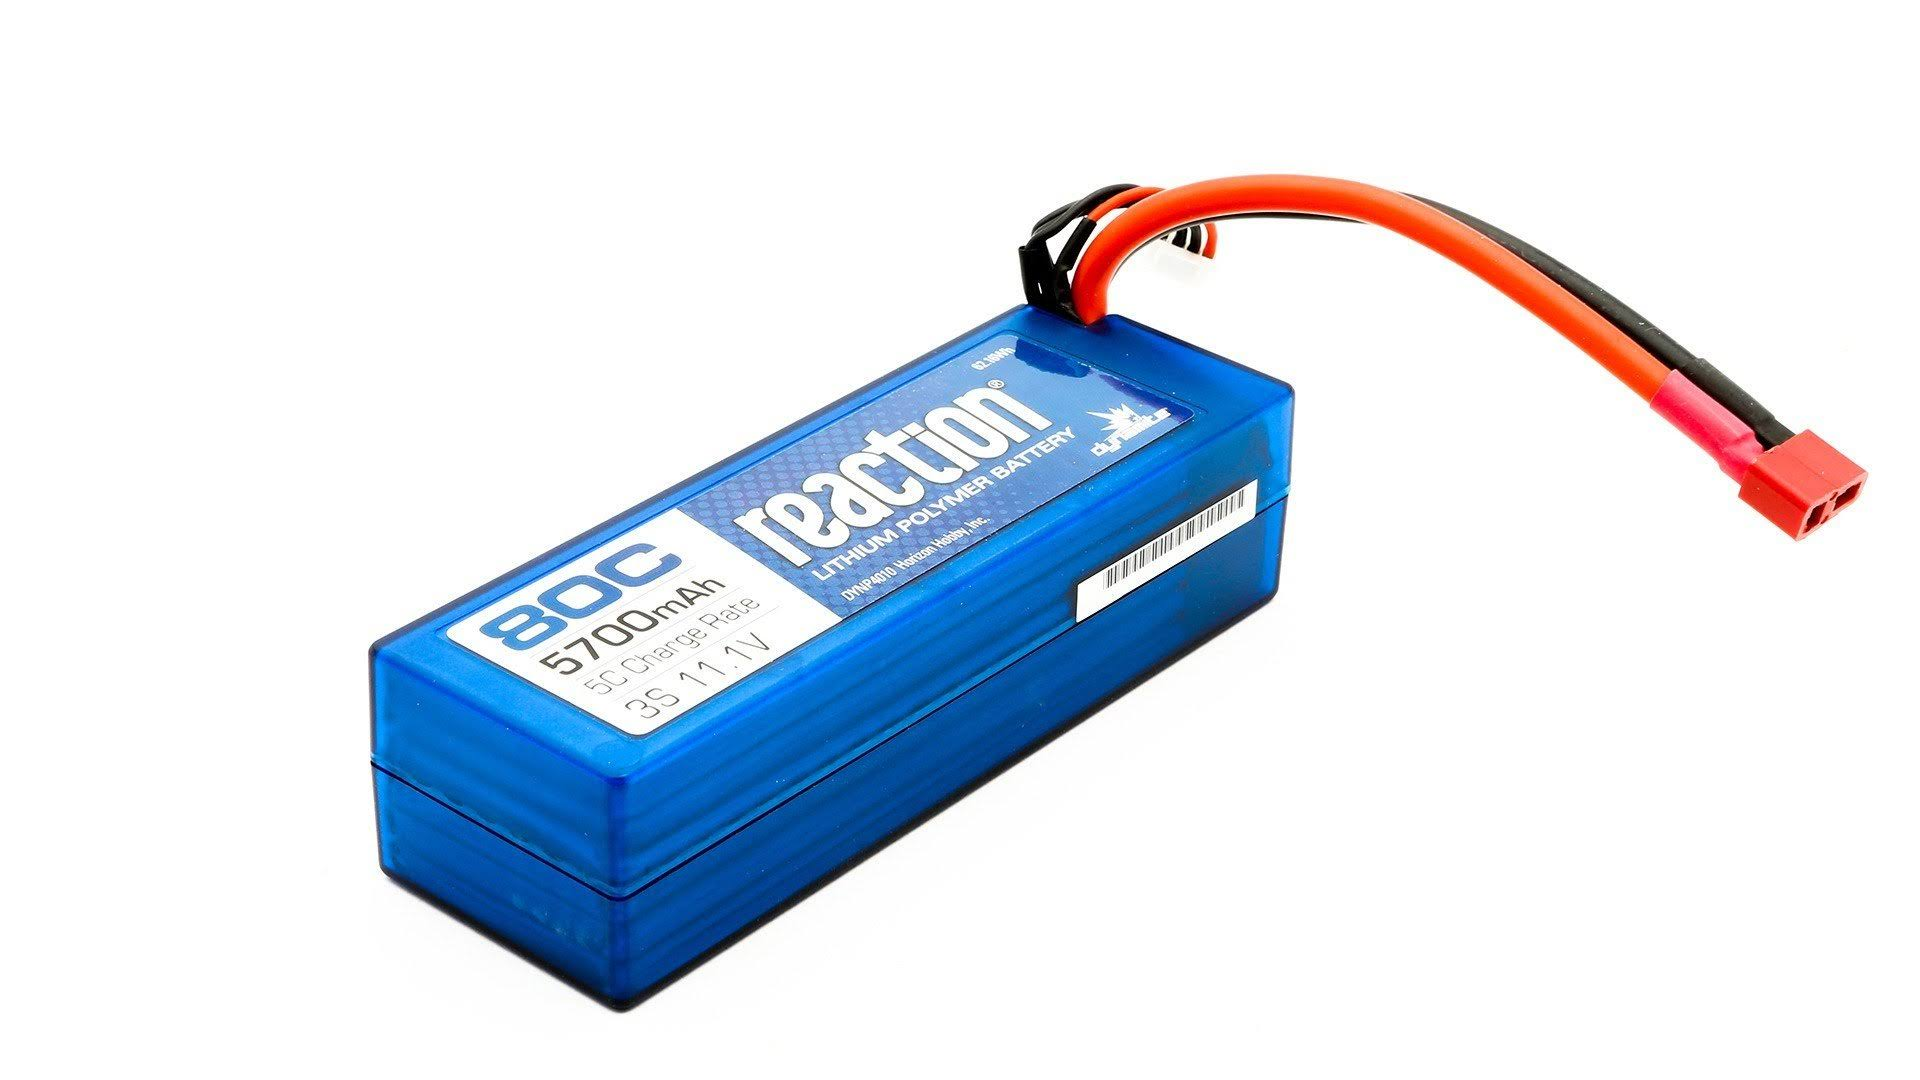 Dynamite Reaction 3s 80c Lipo Battery - 11.1V, 5700mah